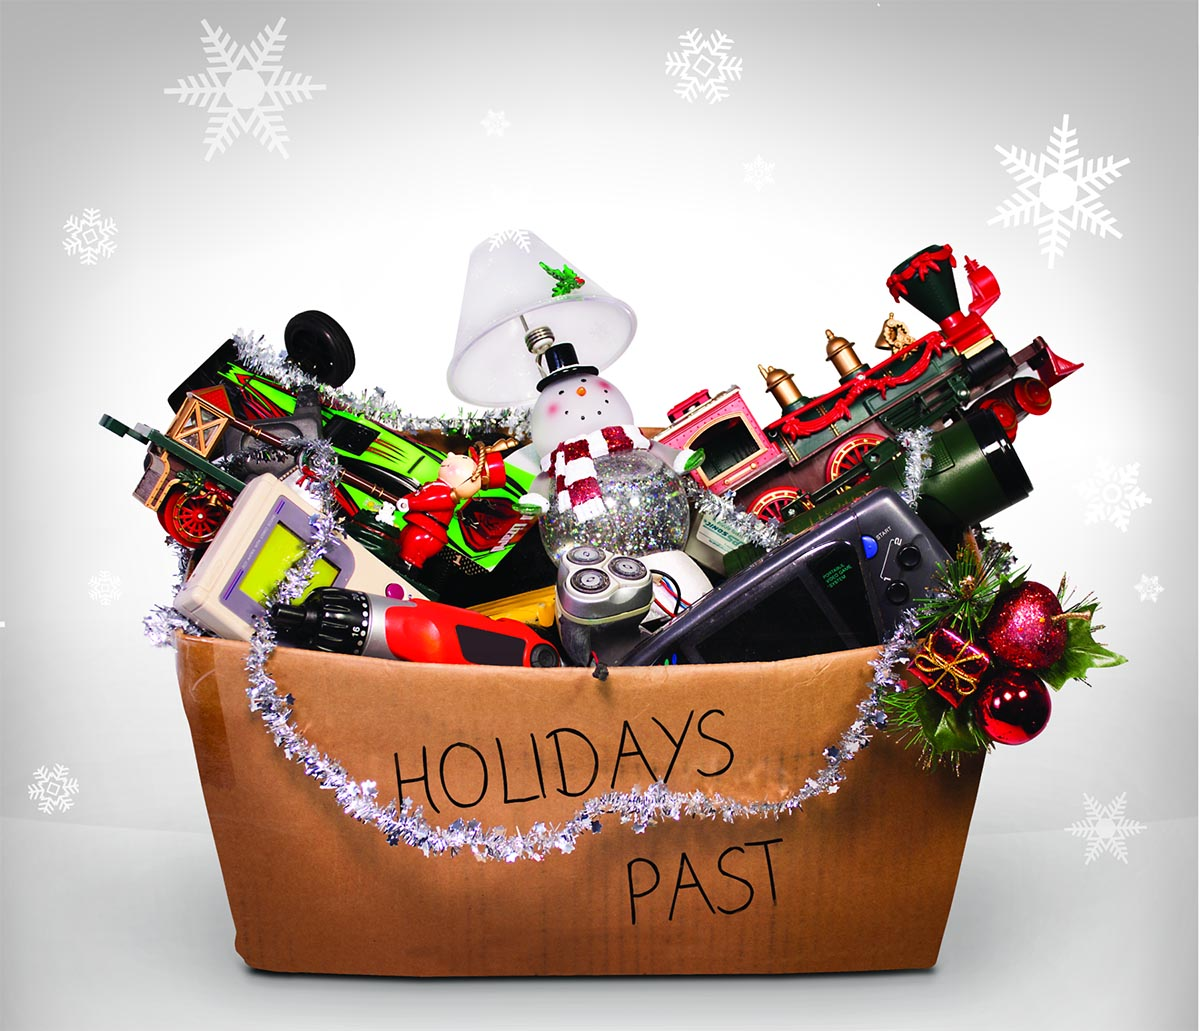 Holiday season safety: Protect your family by recycling old batteries